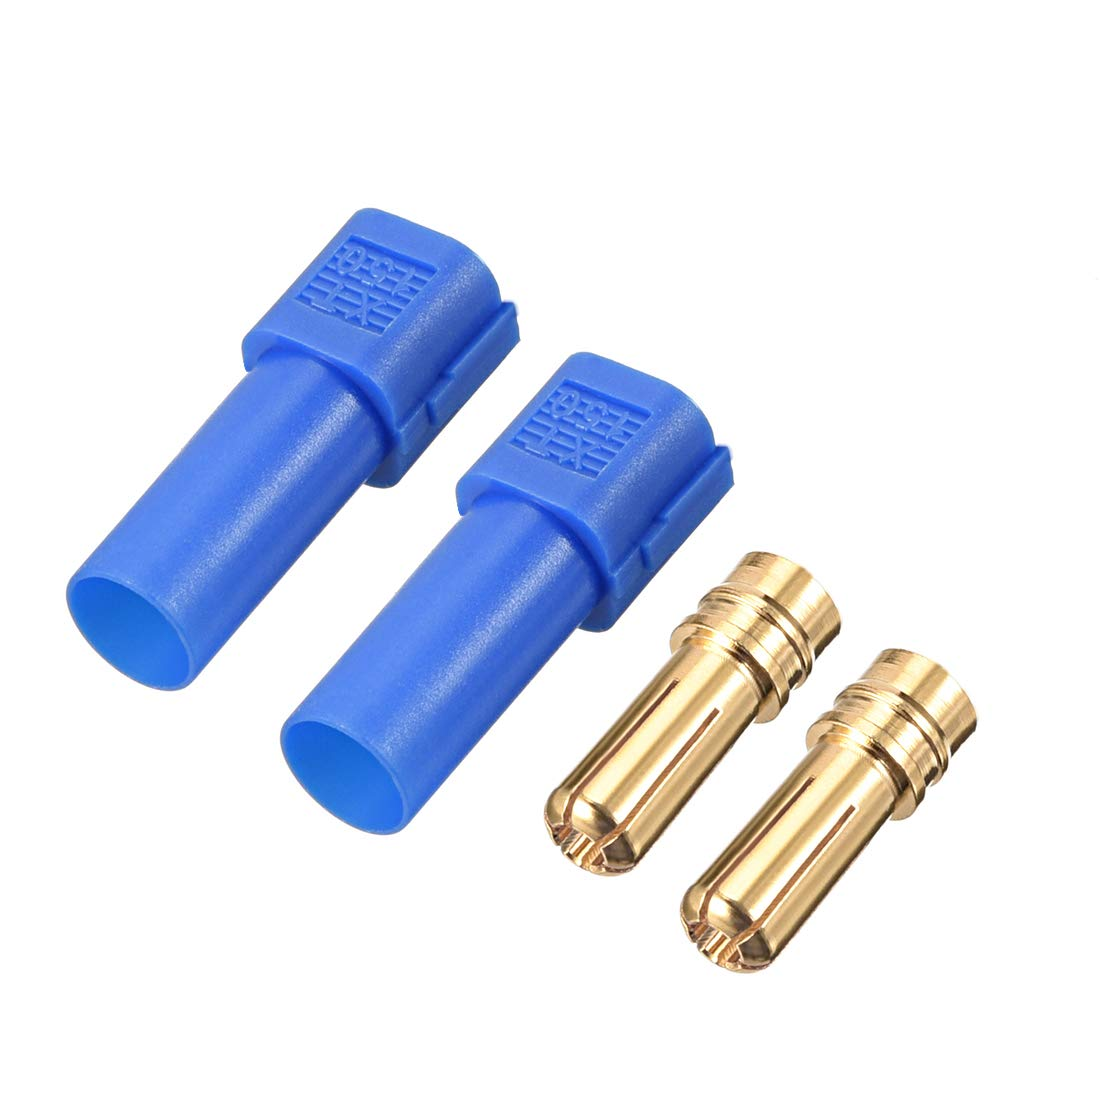 uxcell 3 Pairs 6MM Bullets Connectors Banana Plugs Male Female Plug Set with Housing #0186